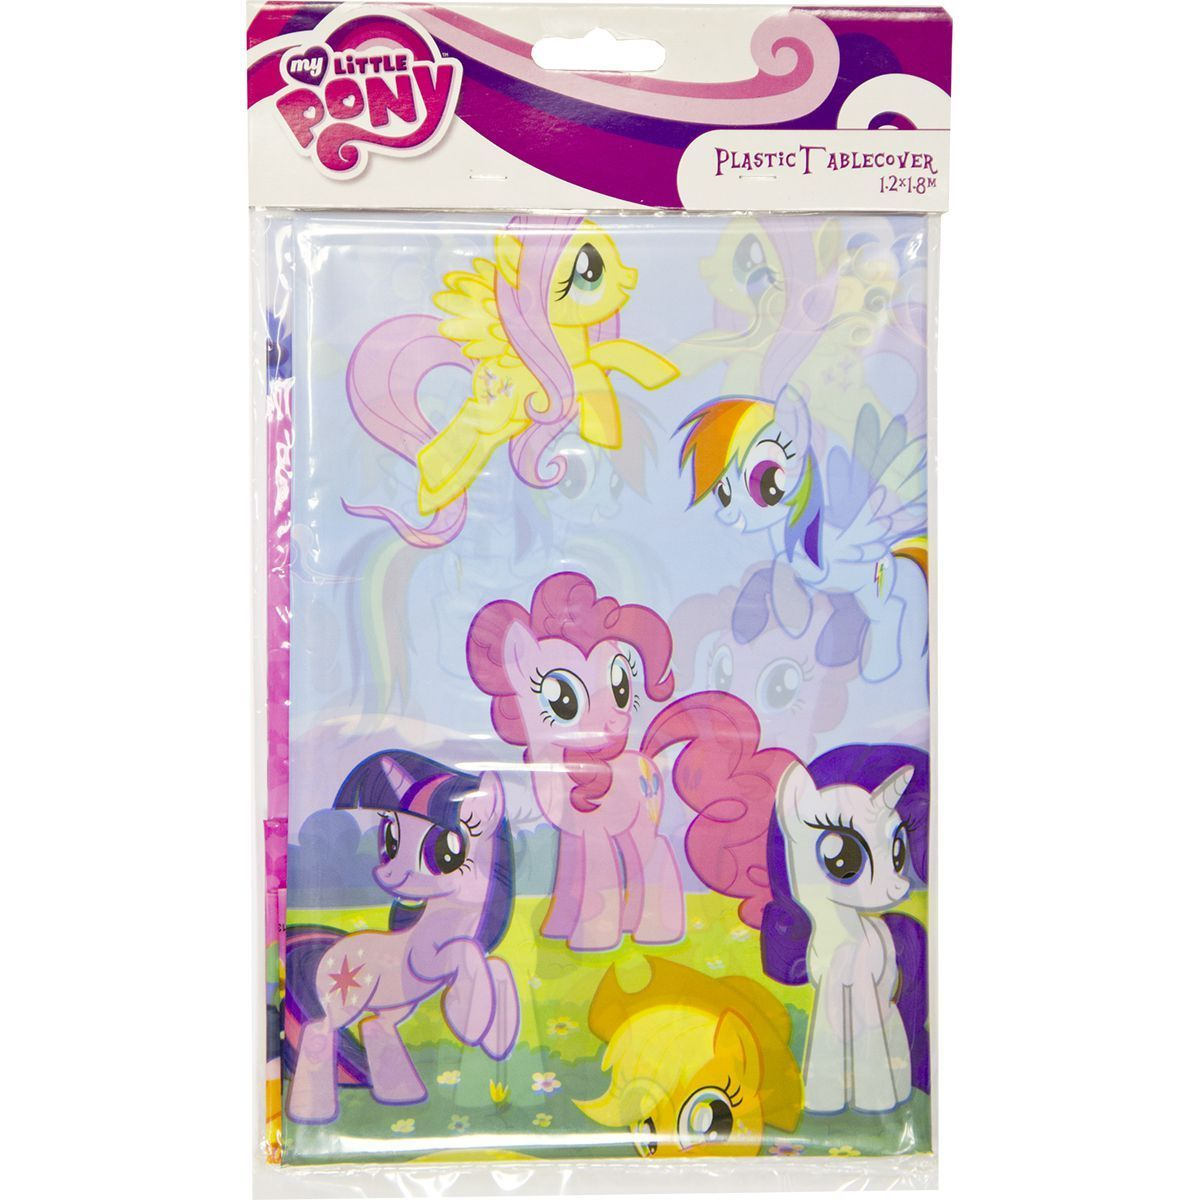 1502-1330 Скатерть п/э My Little Pony 1,2х1,8м/А